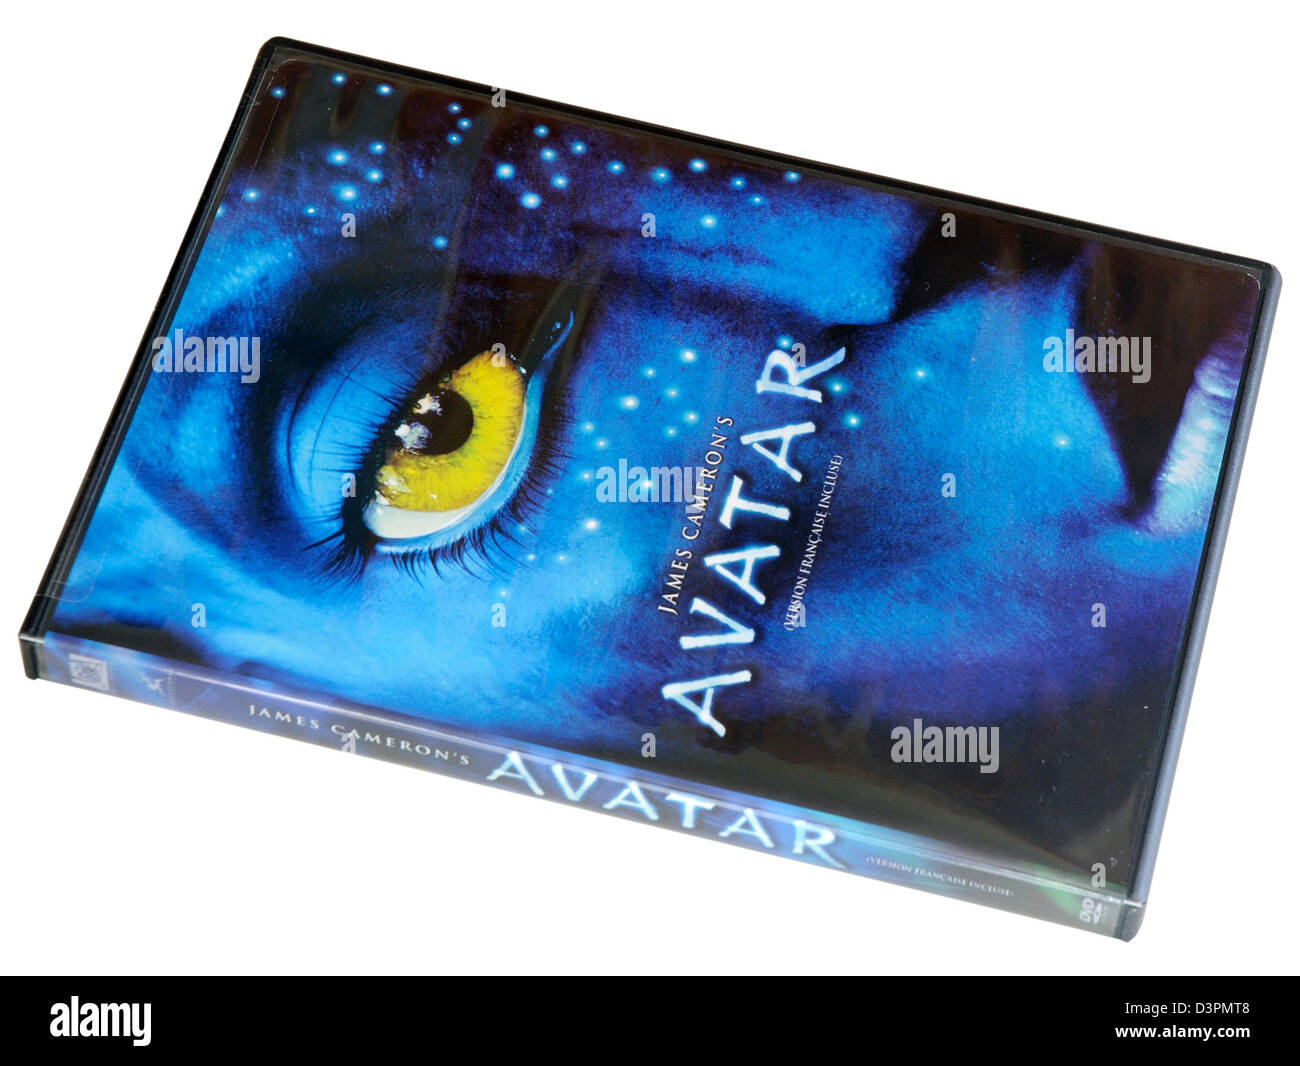 Avatar DVD - Stock Image